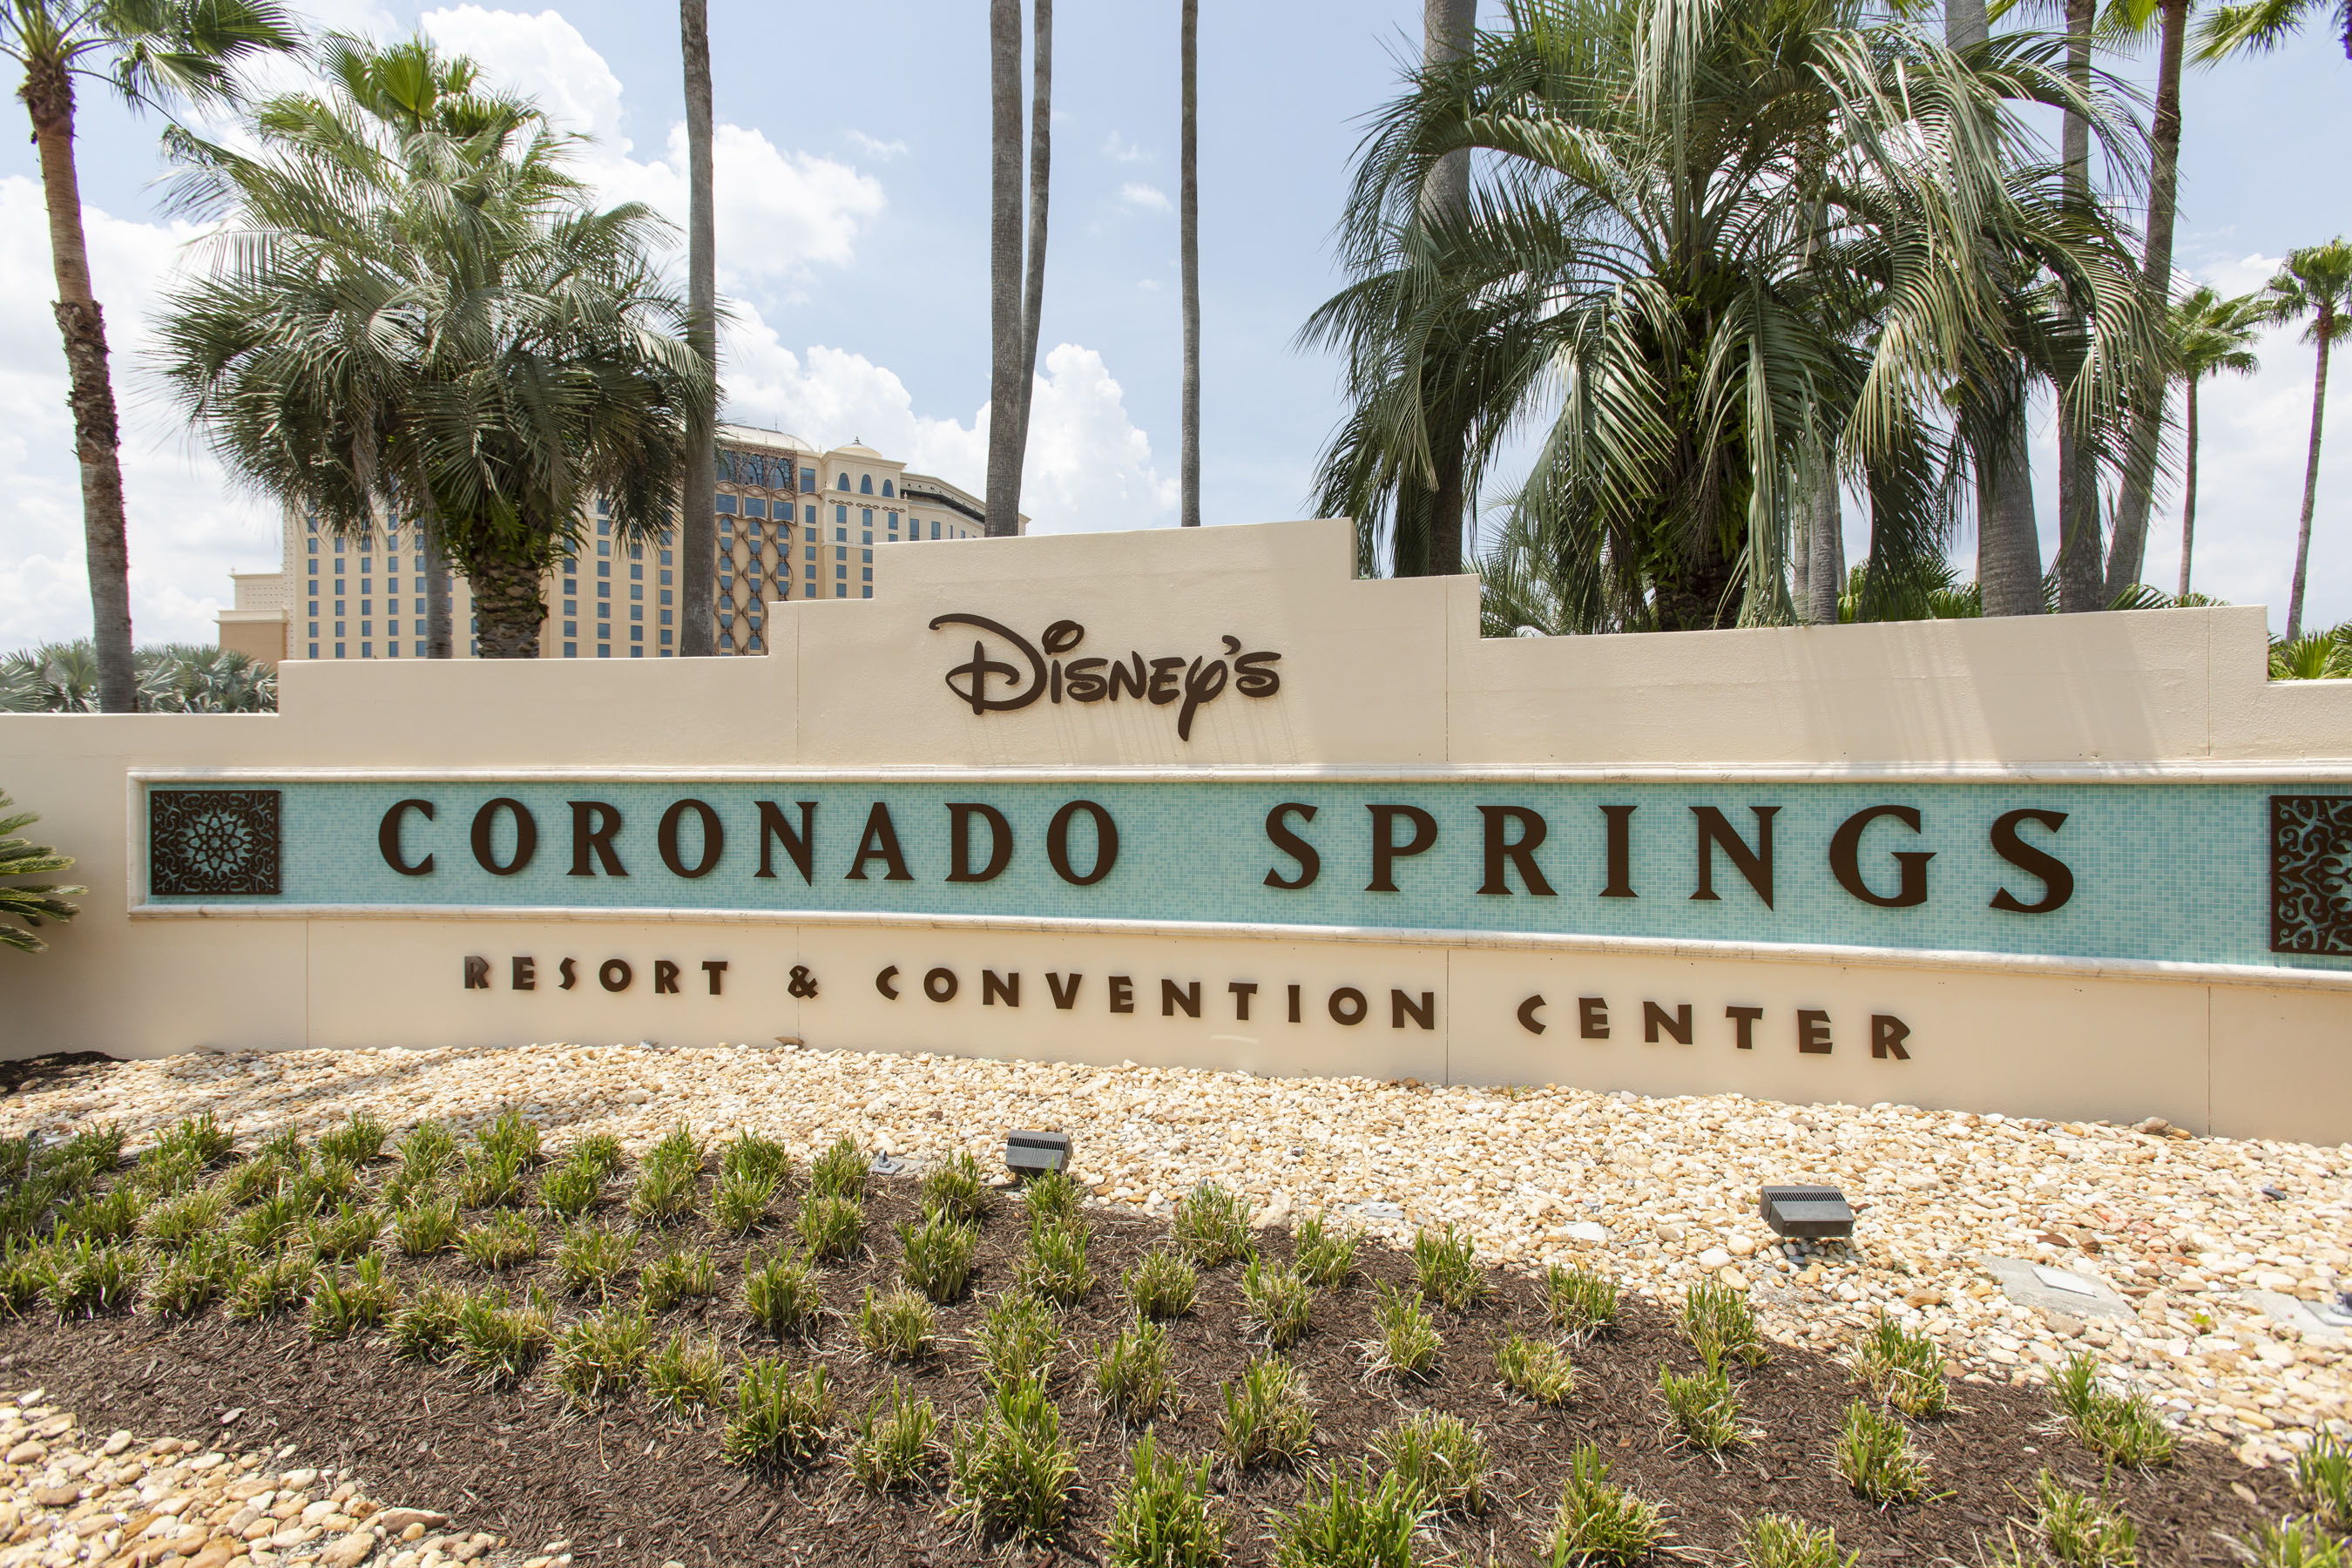 New entrance sign at Disney's Coronado Springs Resort